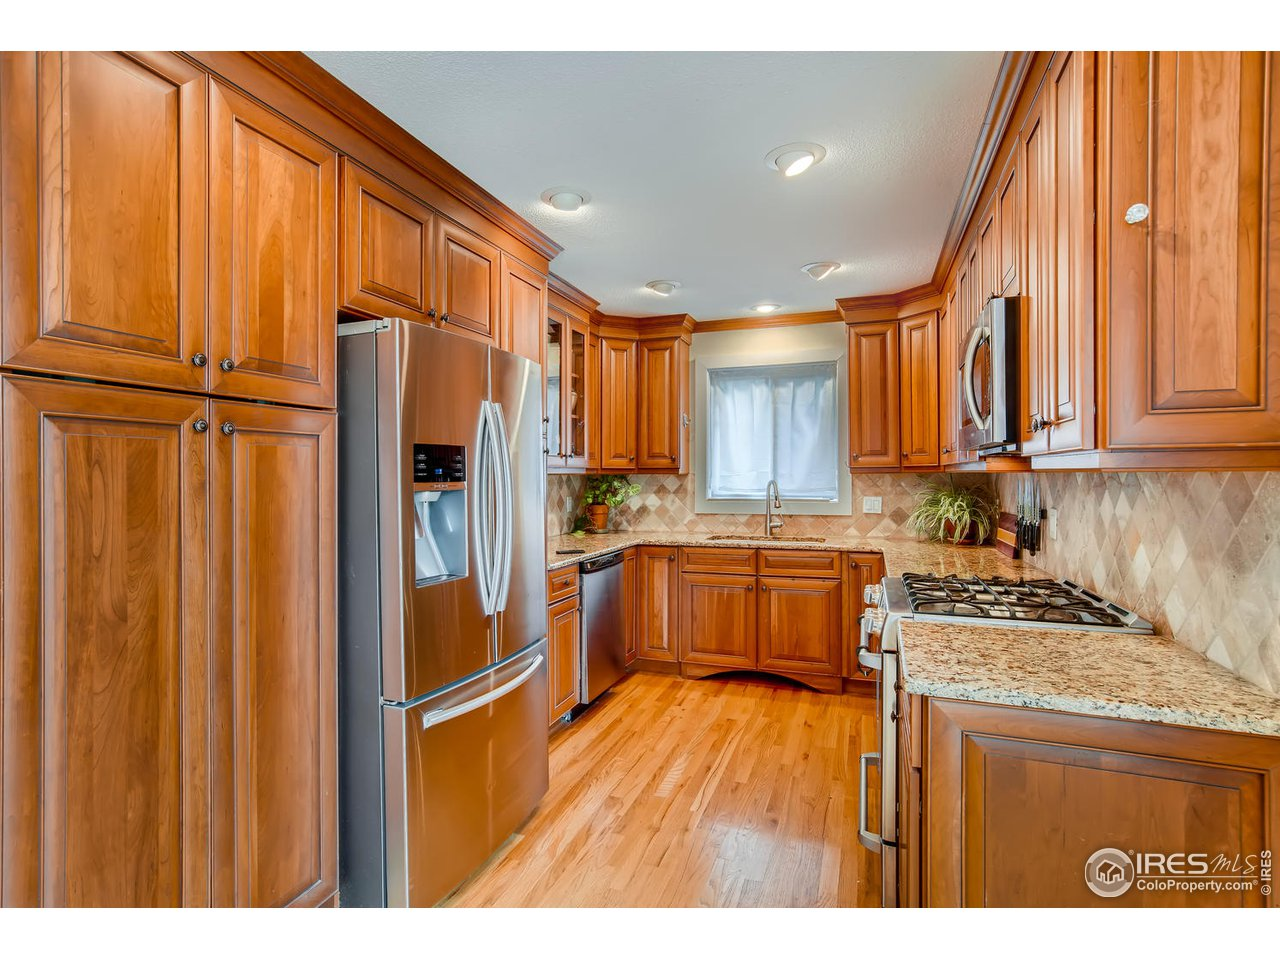 Chef's Kitchen with stainless steel, Gas stove